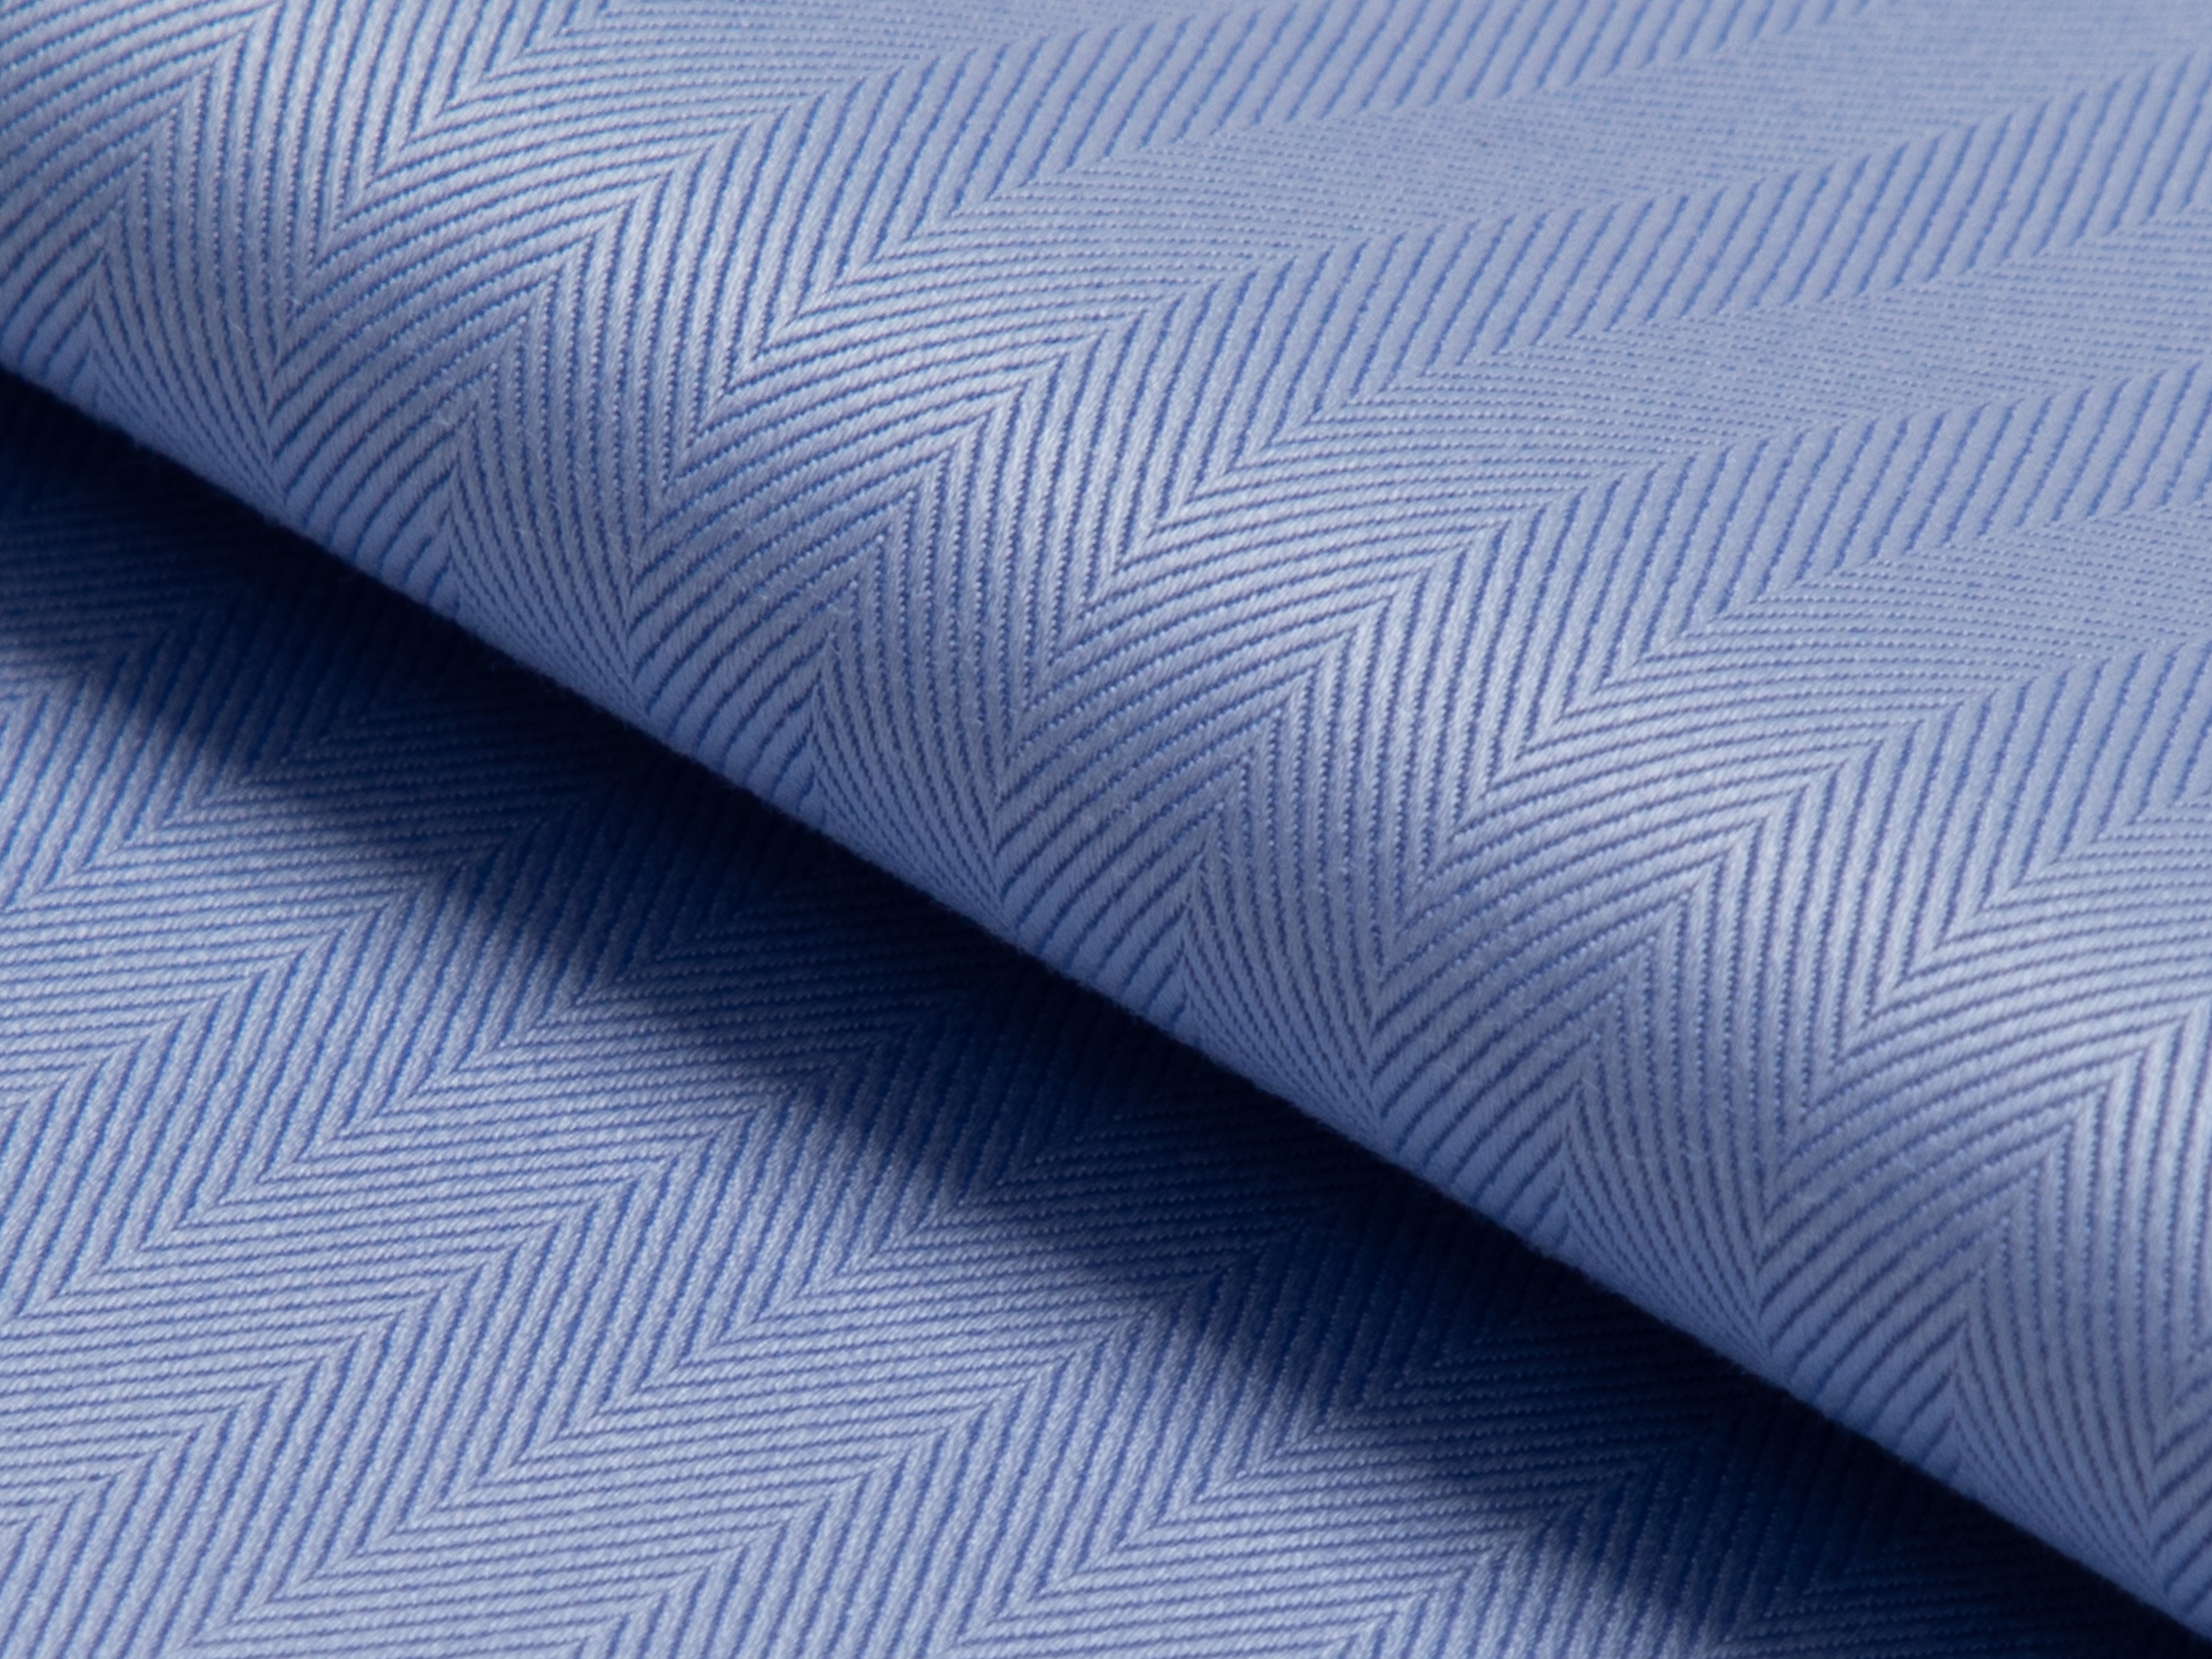 Buy tailor made shirts online - MAYFAIR (NEW) - Herringbone Blue